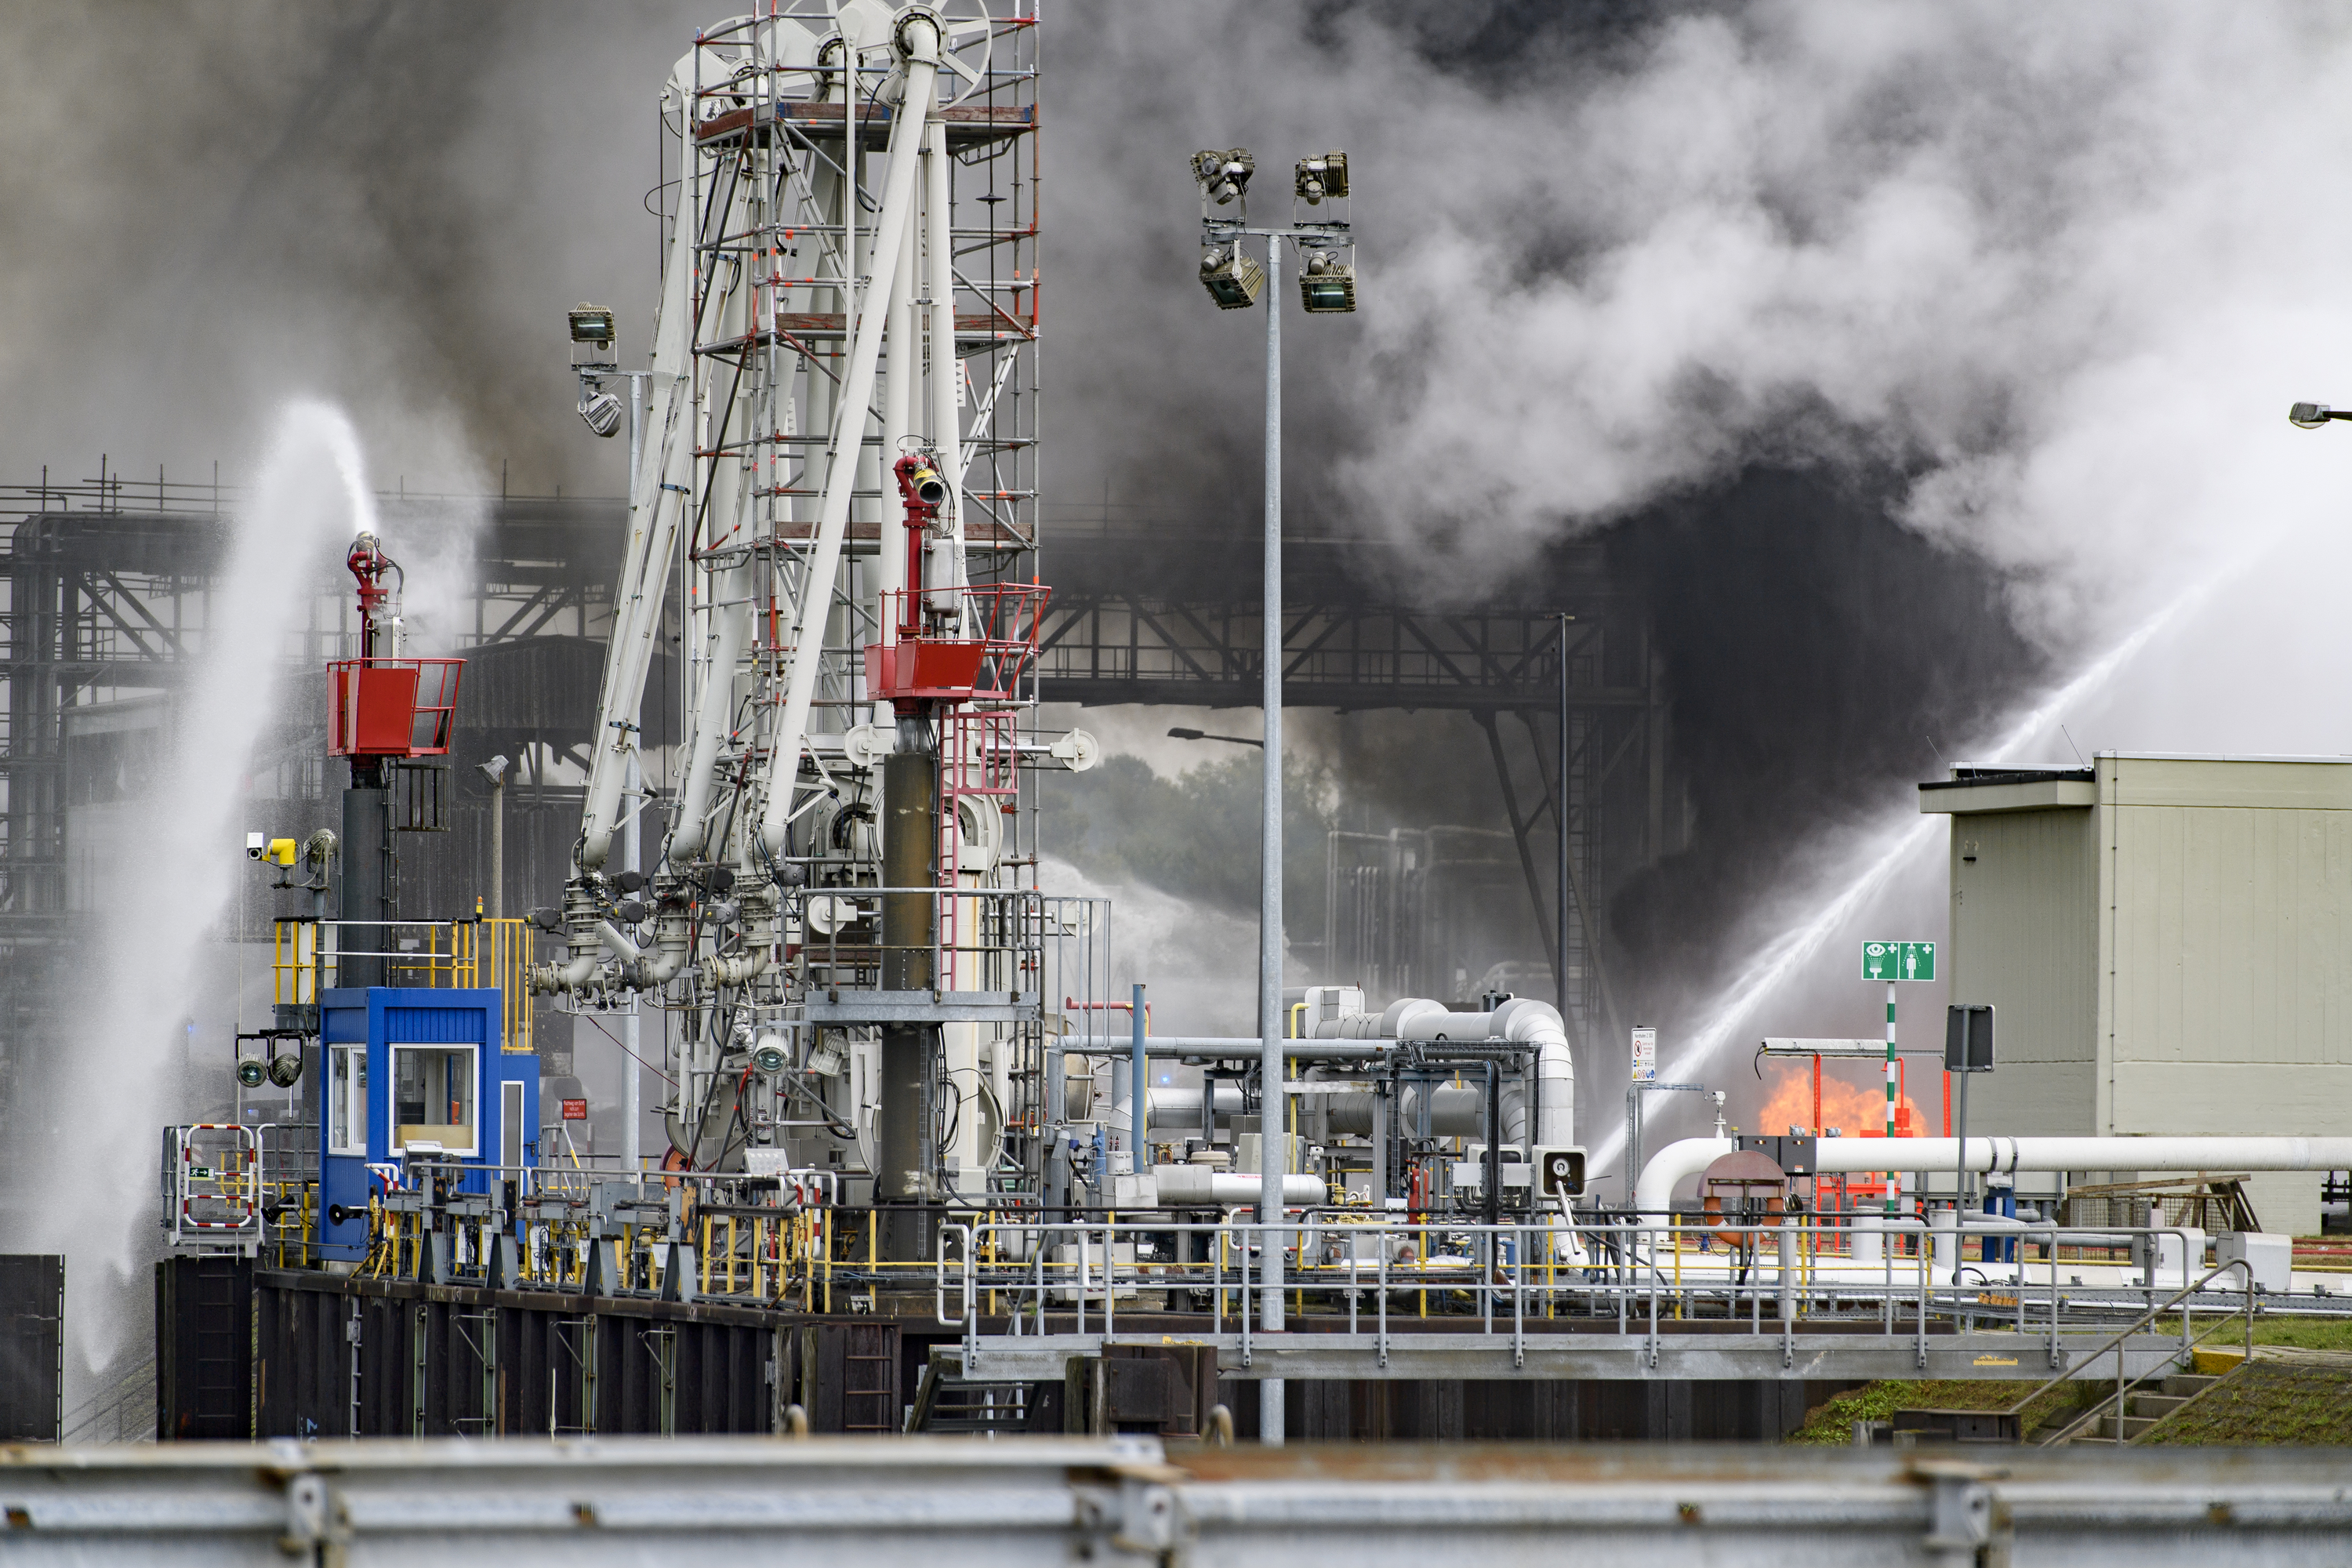 One-dead-others-missing-following-fire-at-BASF-plant-in-Germany